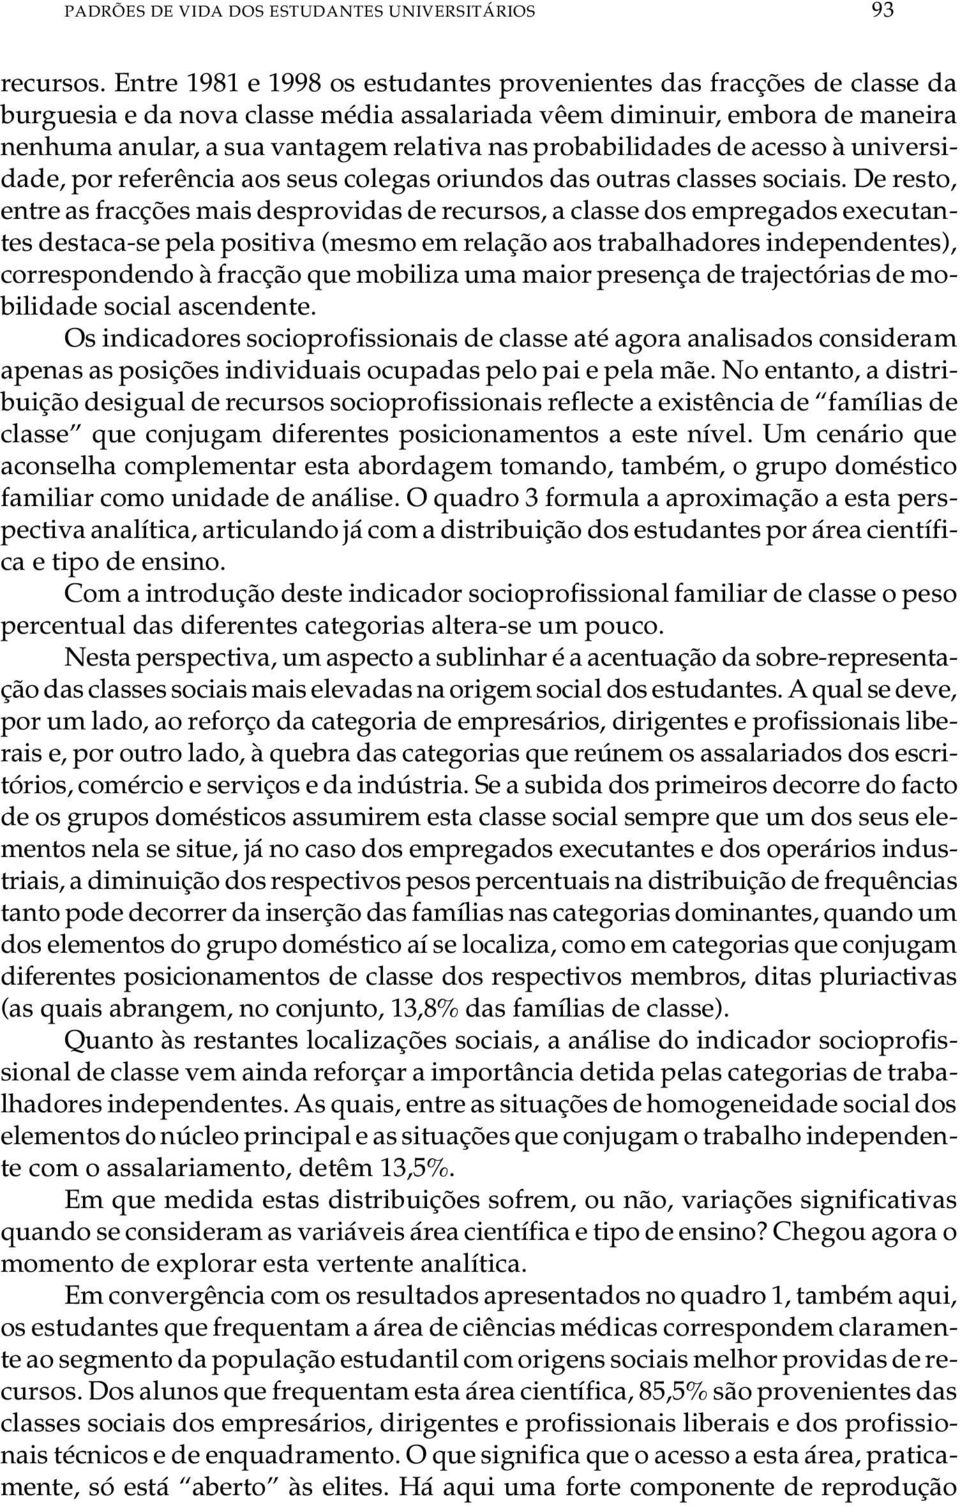 van ta gem re la ti va nas pro ba bi li da des de aces so à uni ver si - da de, por re fe rên cia aos seus co le gas ori un dos das ou tras clas ses so ci a is.